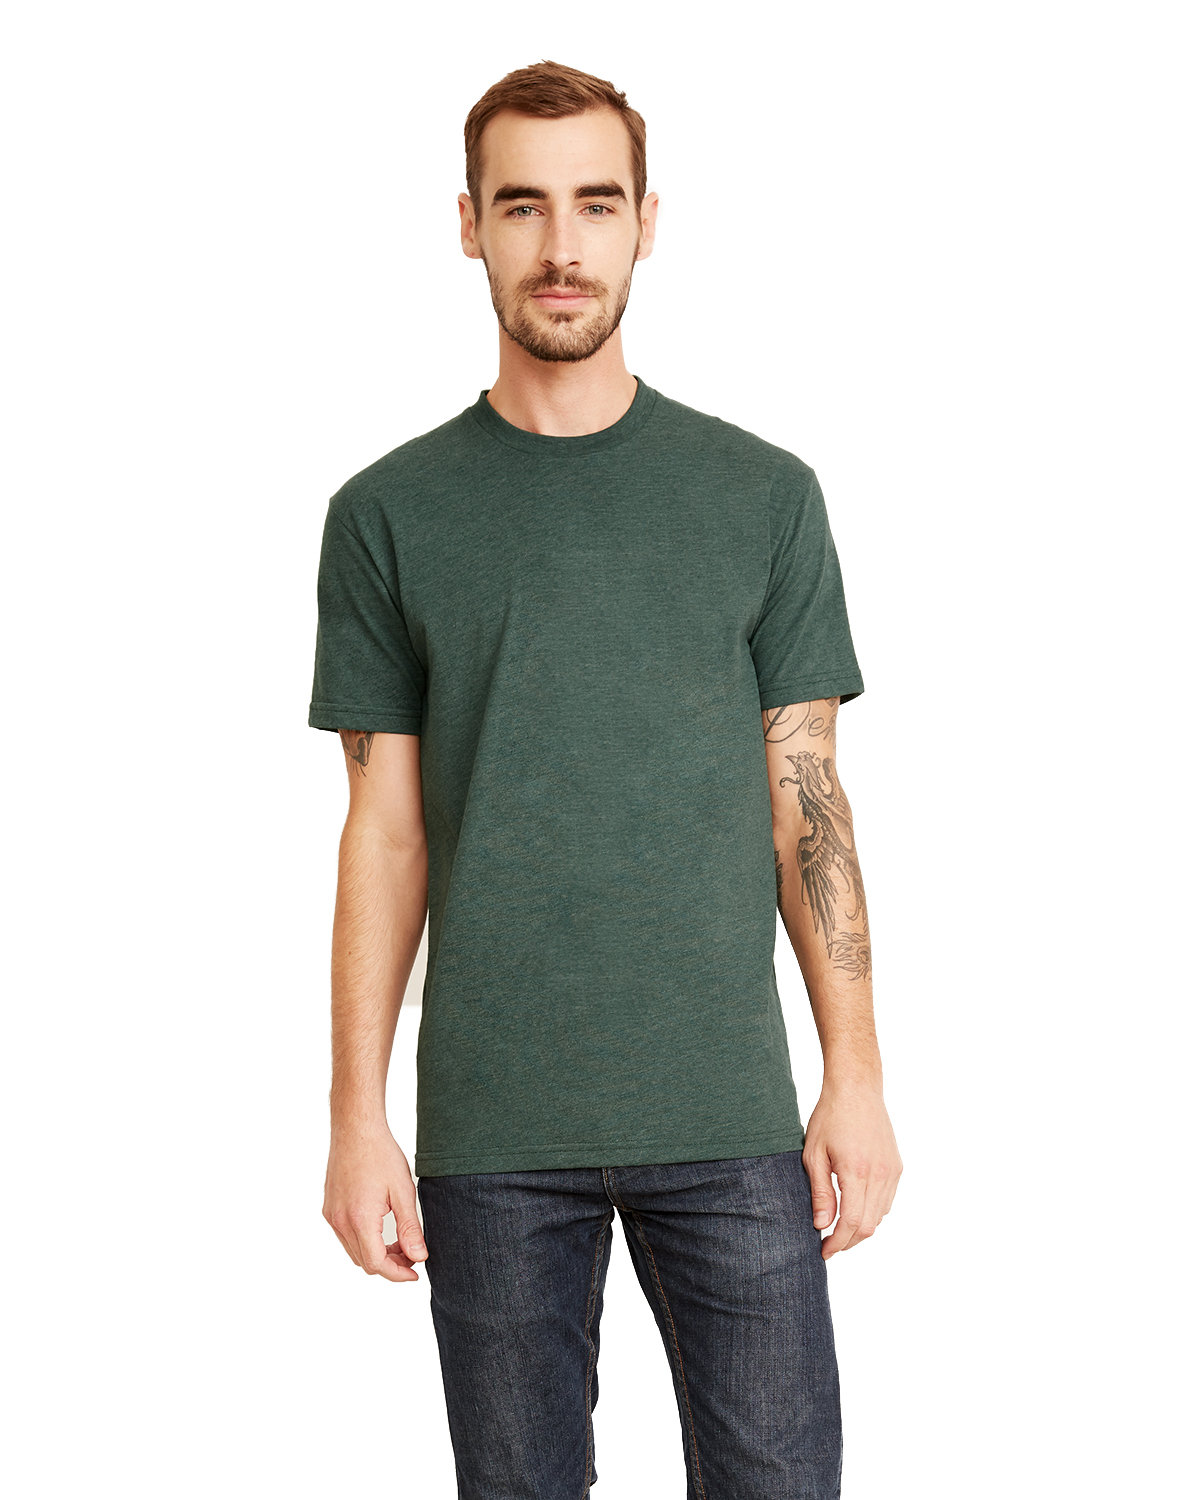 Next Level Men's Sueded Crew HTH FOREST GREEN